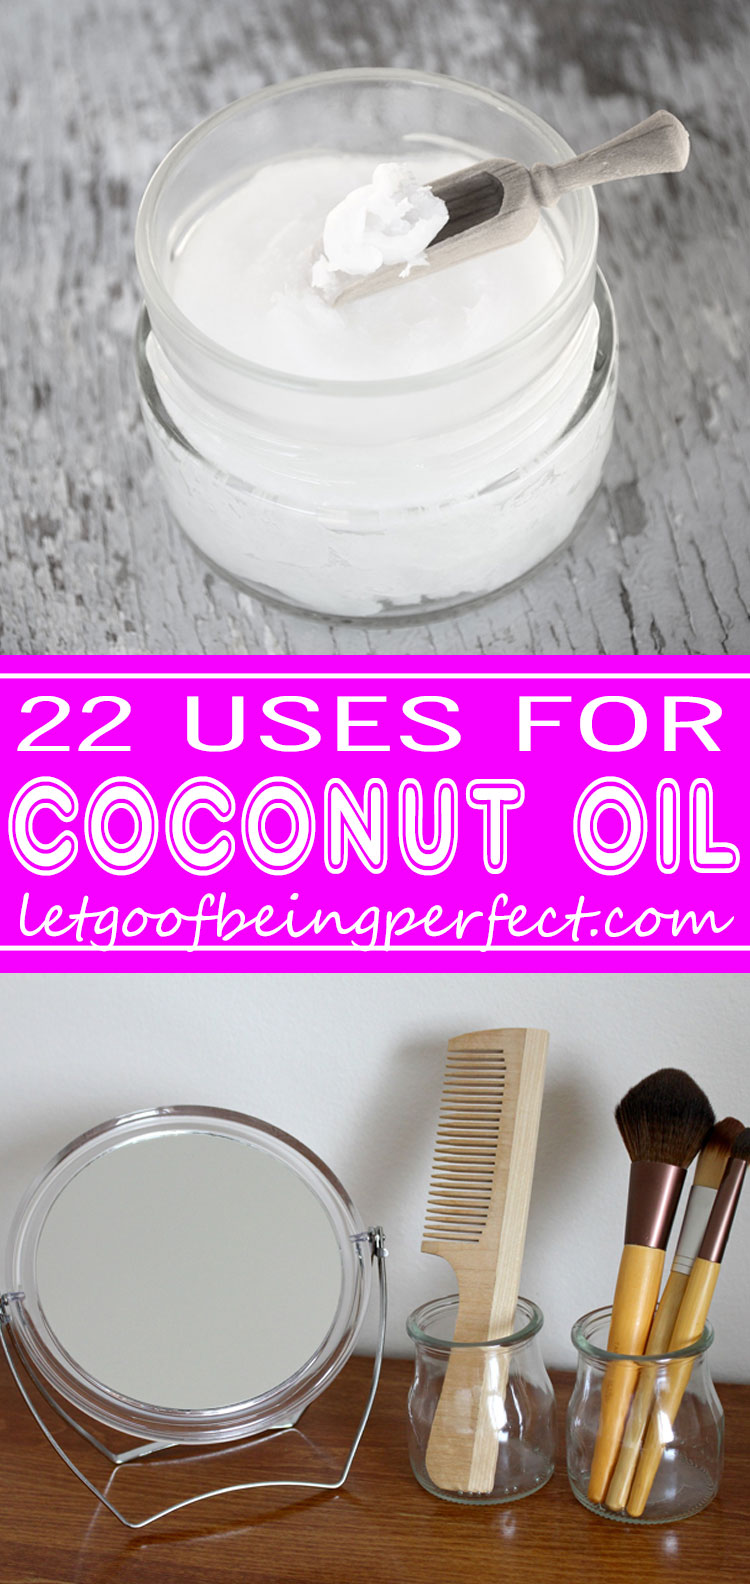 22 Awesome Uses for Coconut Oil - Coconut oil is one of nature's superfoods. This list shows you 22 fantastic uses for coconut oil. Great for hair, skin, food, baby, and even furniture! You can find refined or unrefined coconut oil right in your grocery store aisle. Explore the web site for more craft tutorials, dozens of cute refashionista and fashion ideas with good, clear photos and instructions. http://letgoofbeingperfect.com/